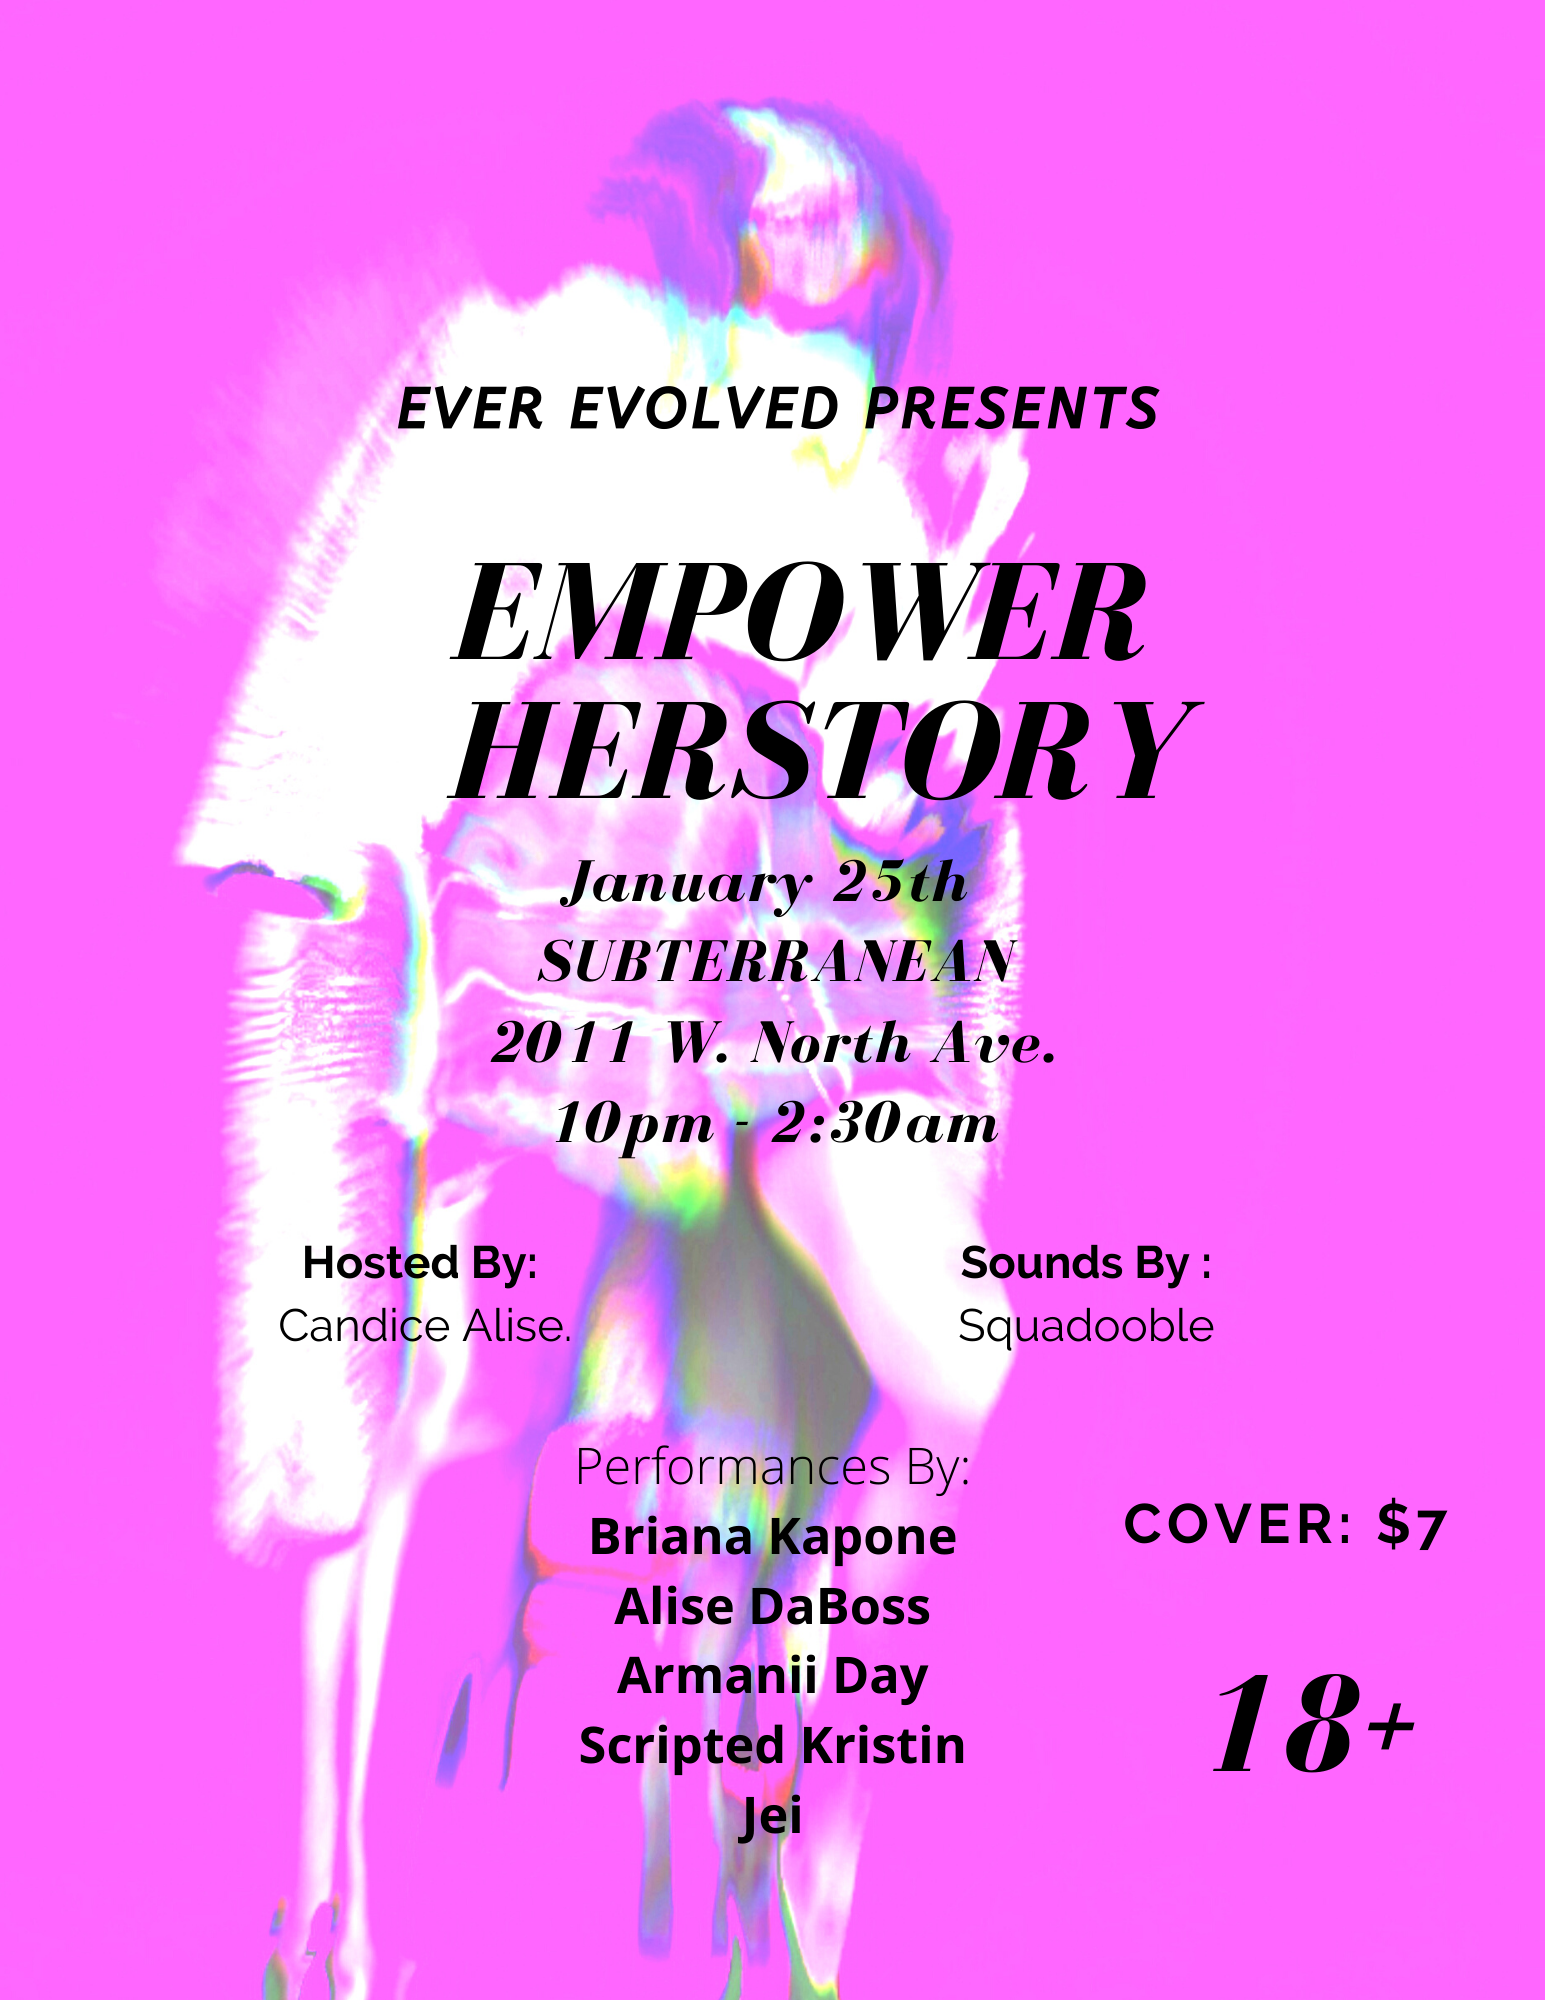 Ever Evolved | Empower Herstory